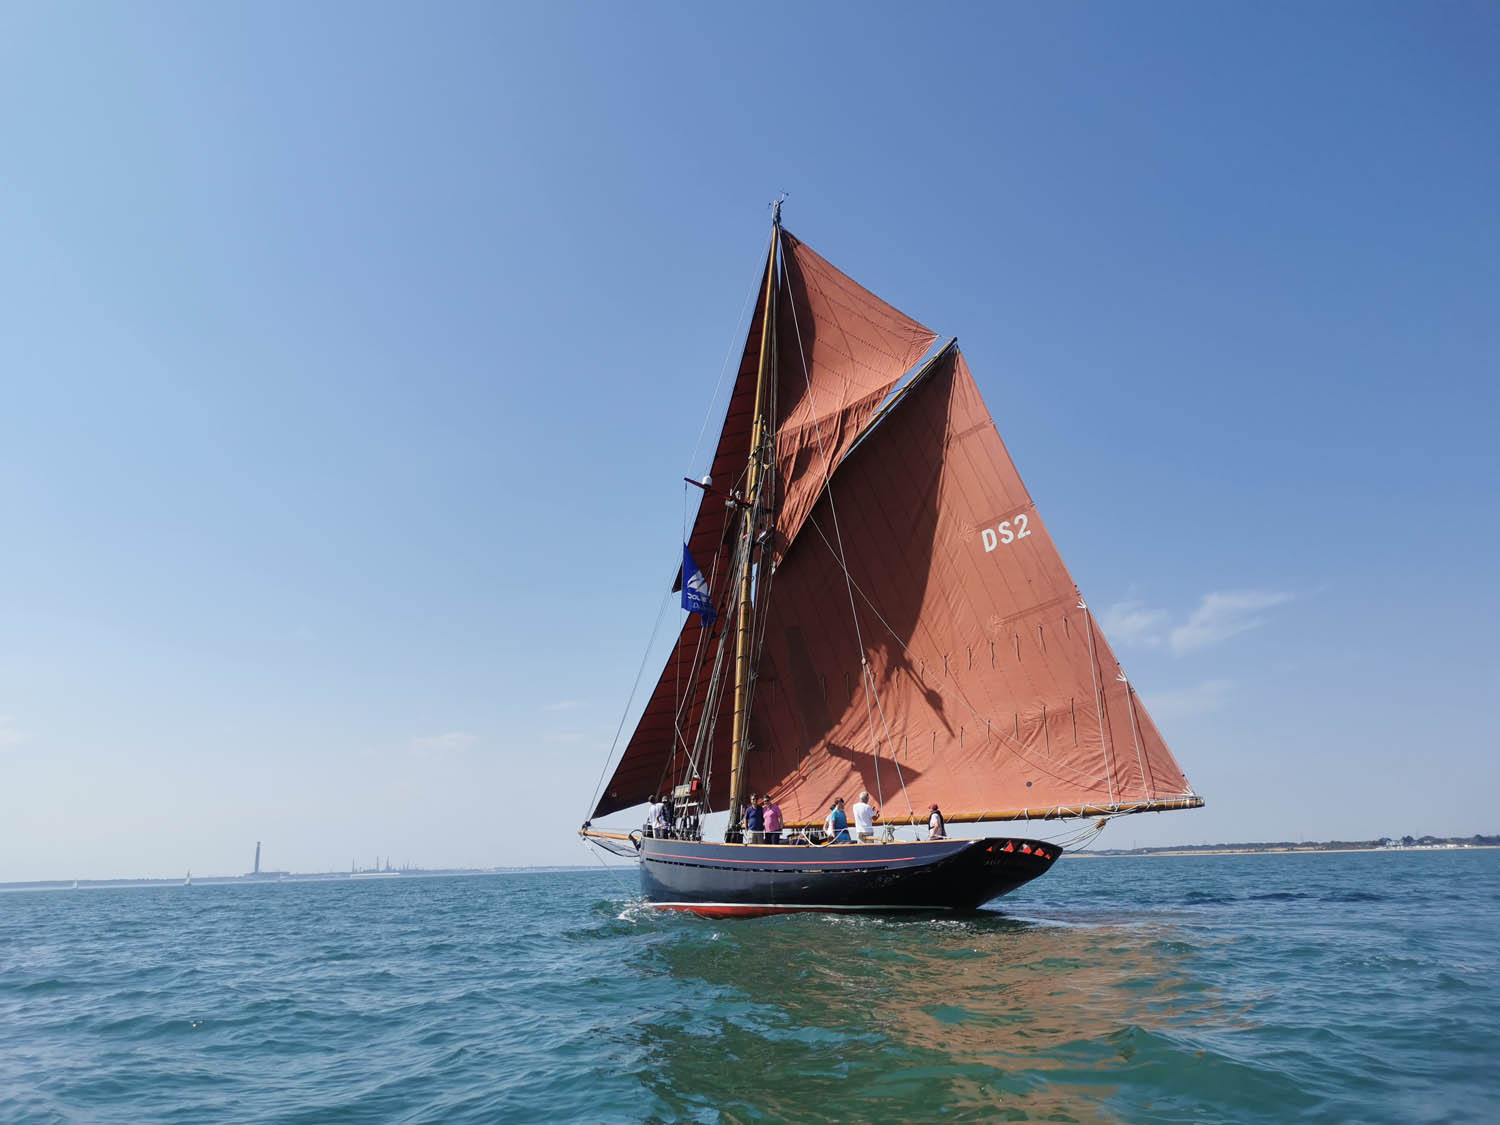 Summer Sailing on the Jolie Brise